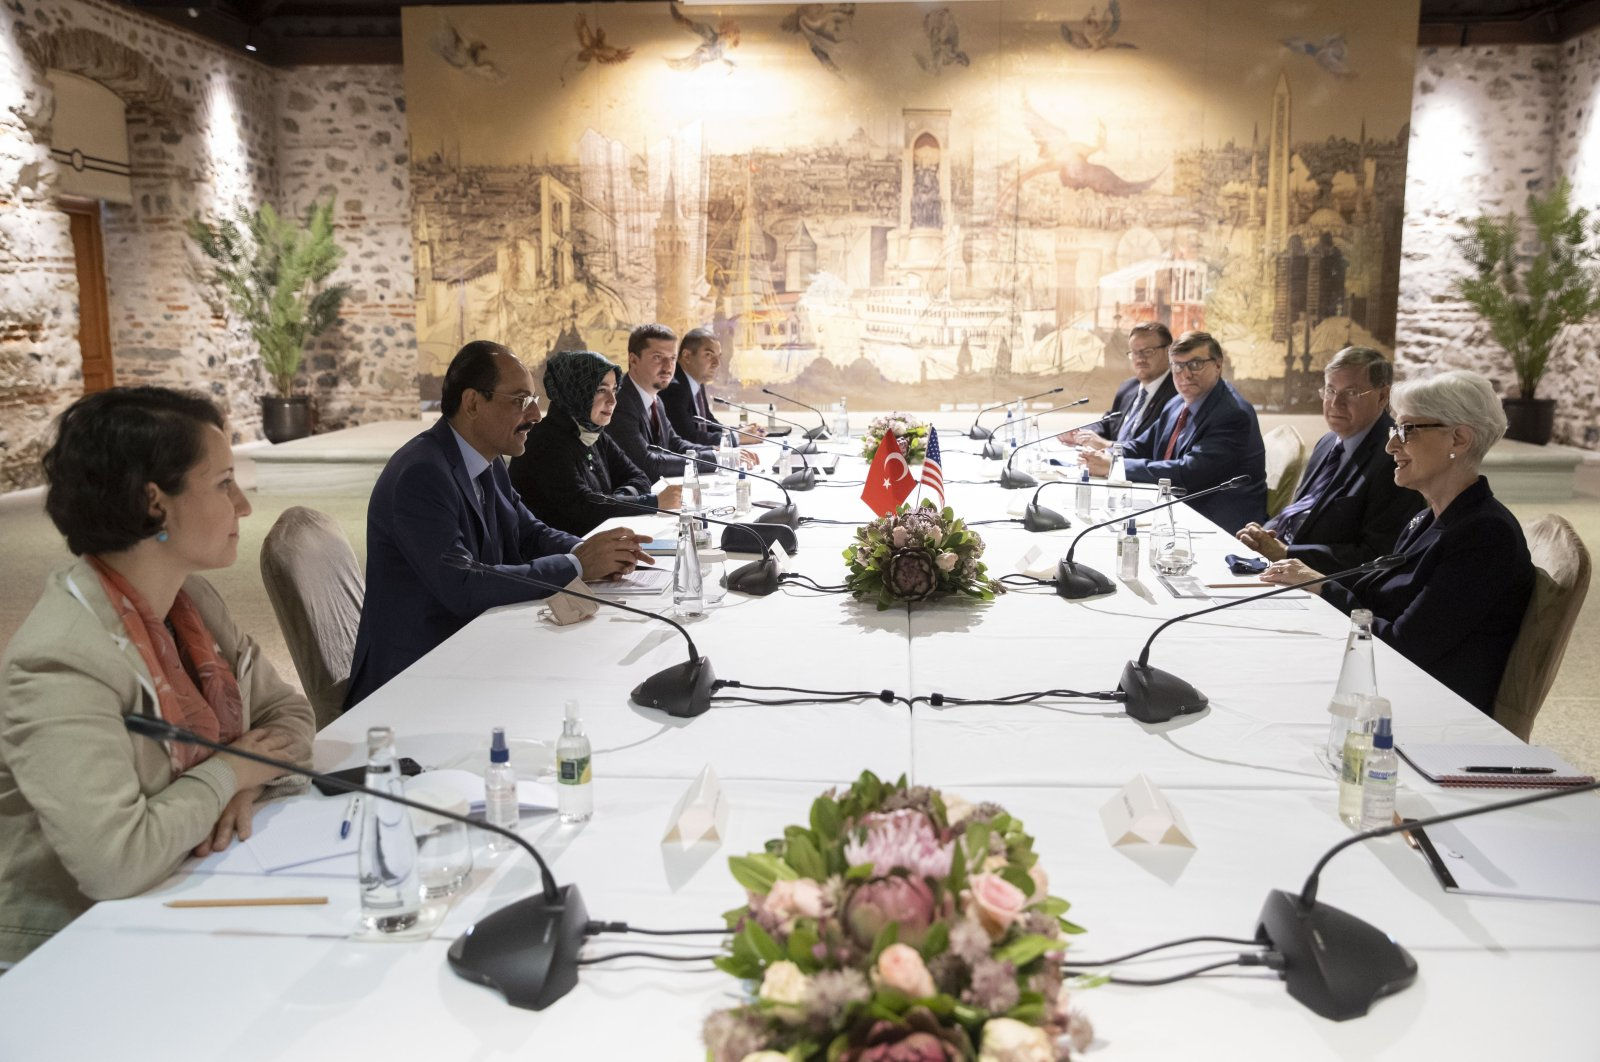 Turkey's Presidential Spokesperson Ibrahim Kalın (2nd L) and his delegation sit across from U.S. Deputy Secretary of State Wendy Sherman (R) with her delegation at Dolmabahçe Palace, Istanbul, Turkey, May 29, 2021. (DHA Photo)